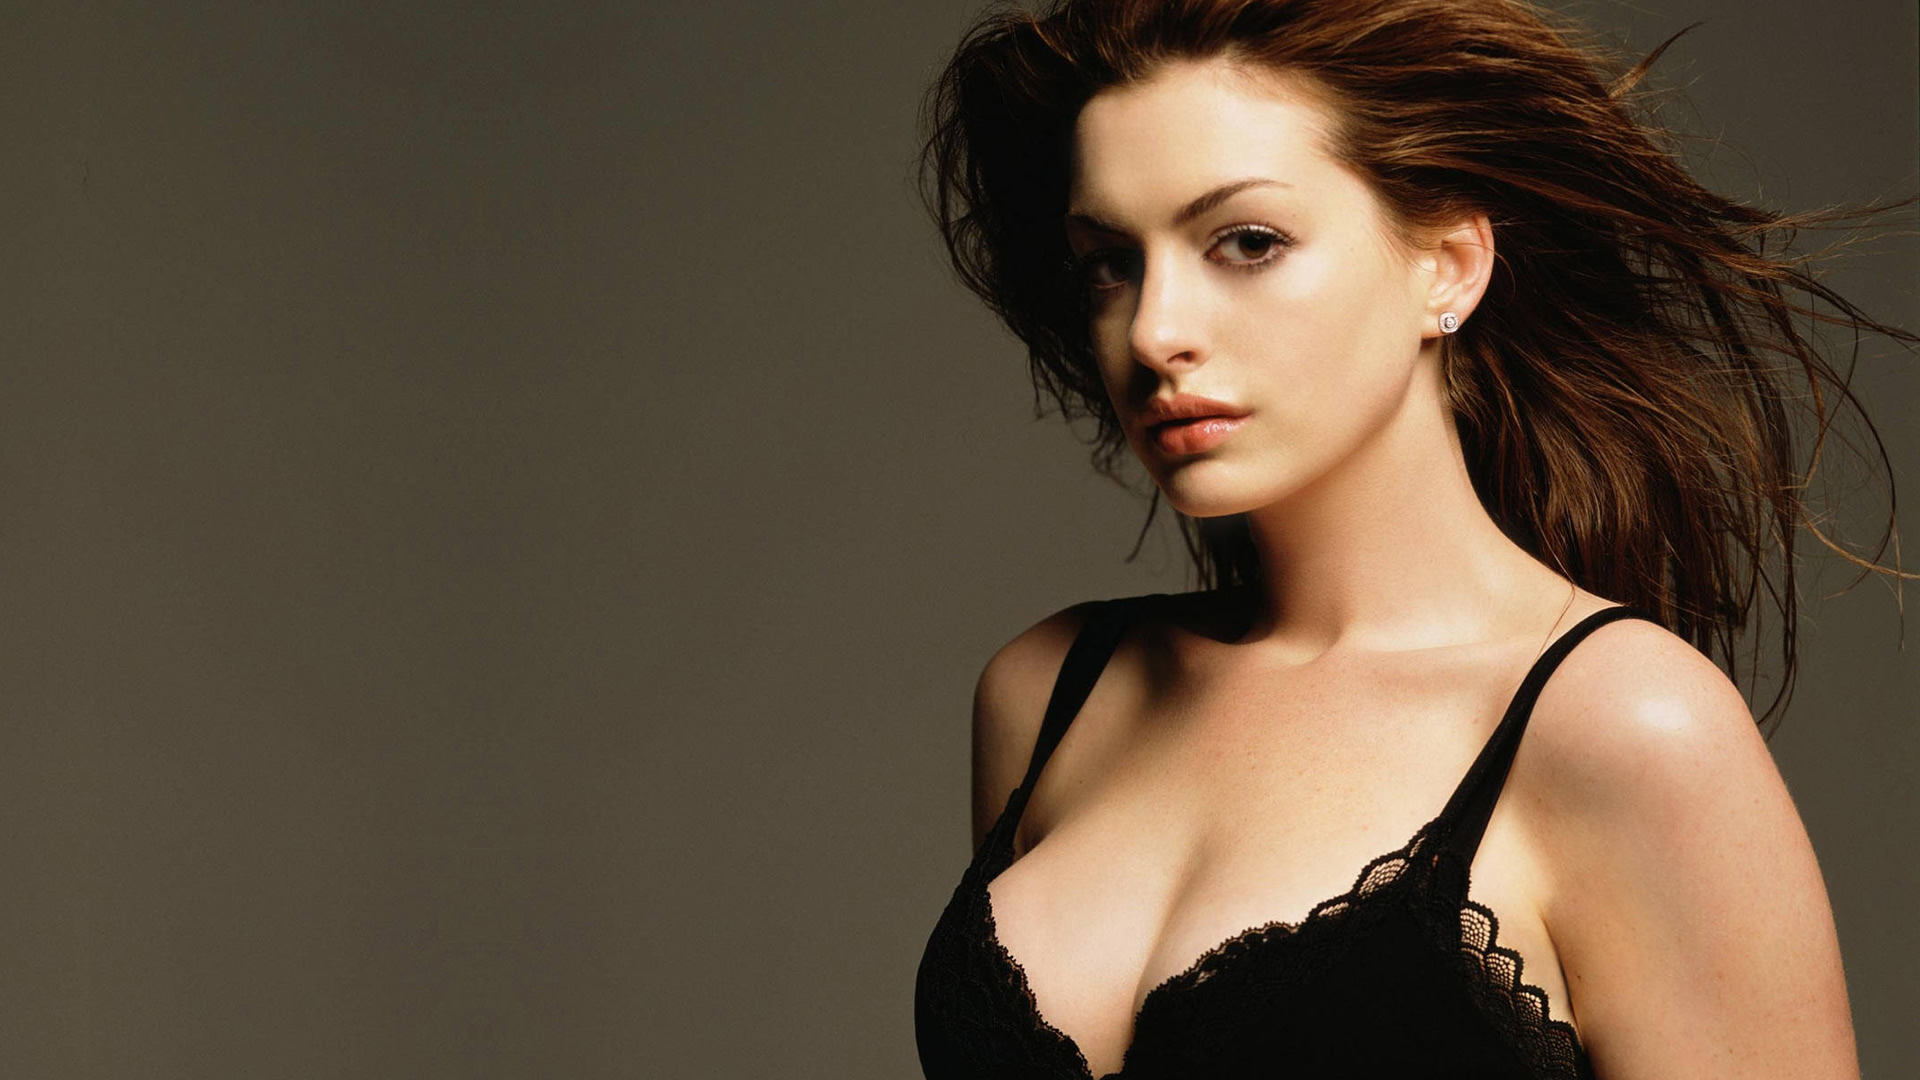 Anne Hathaway Hot Pictures & Wallpapers